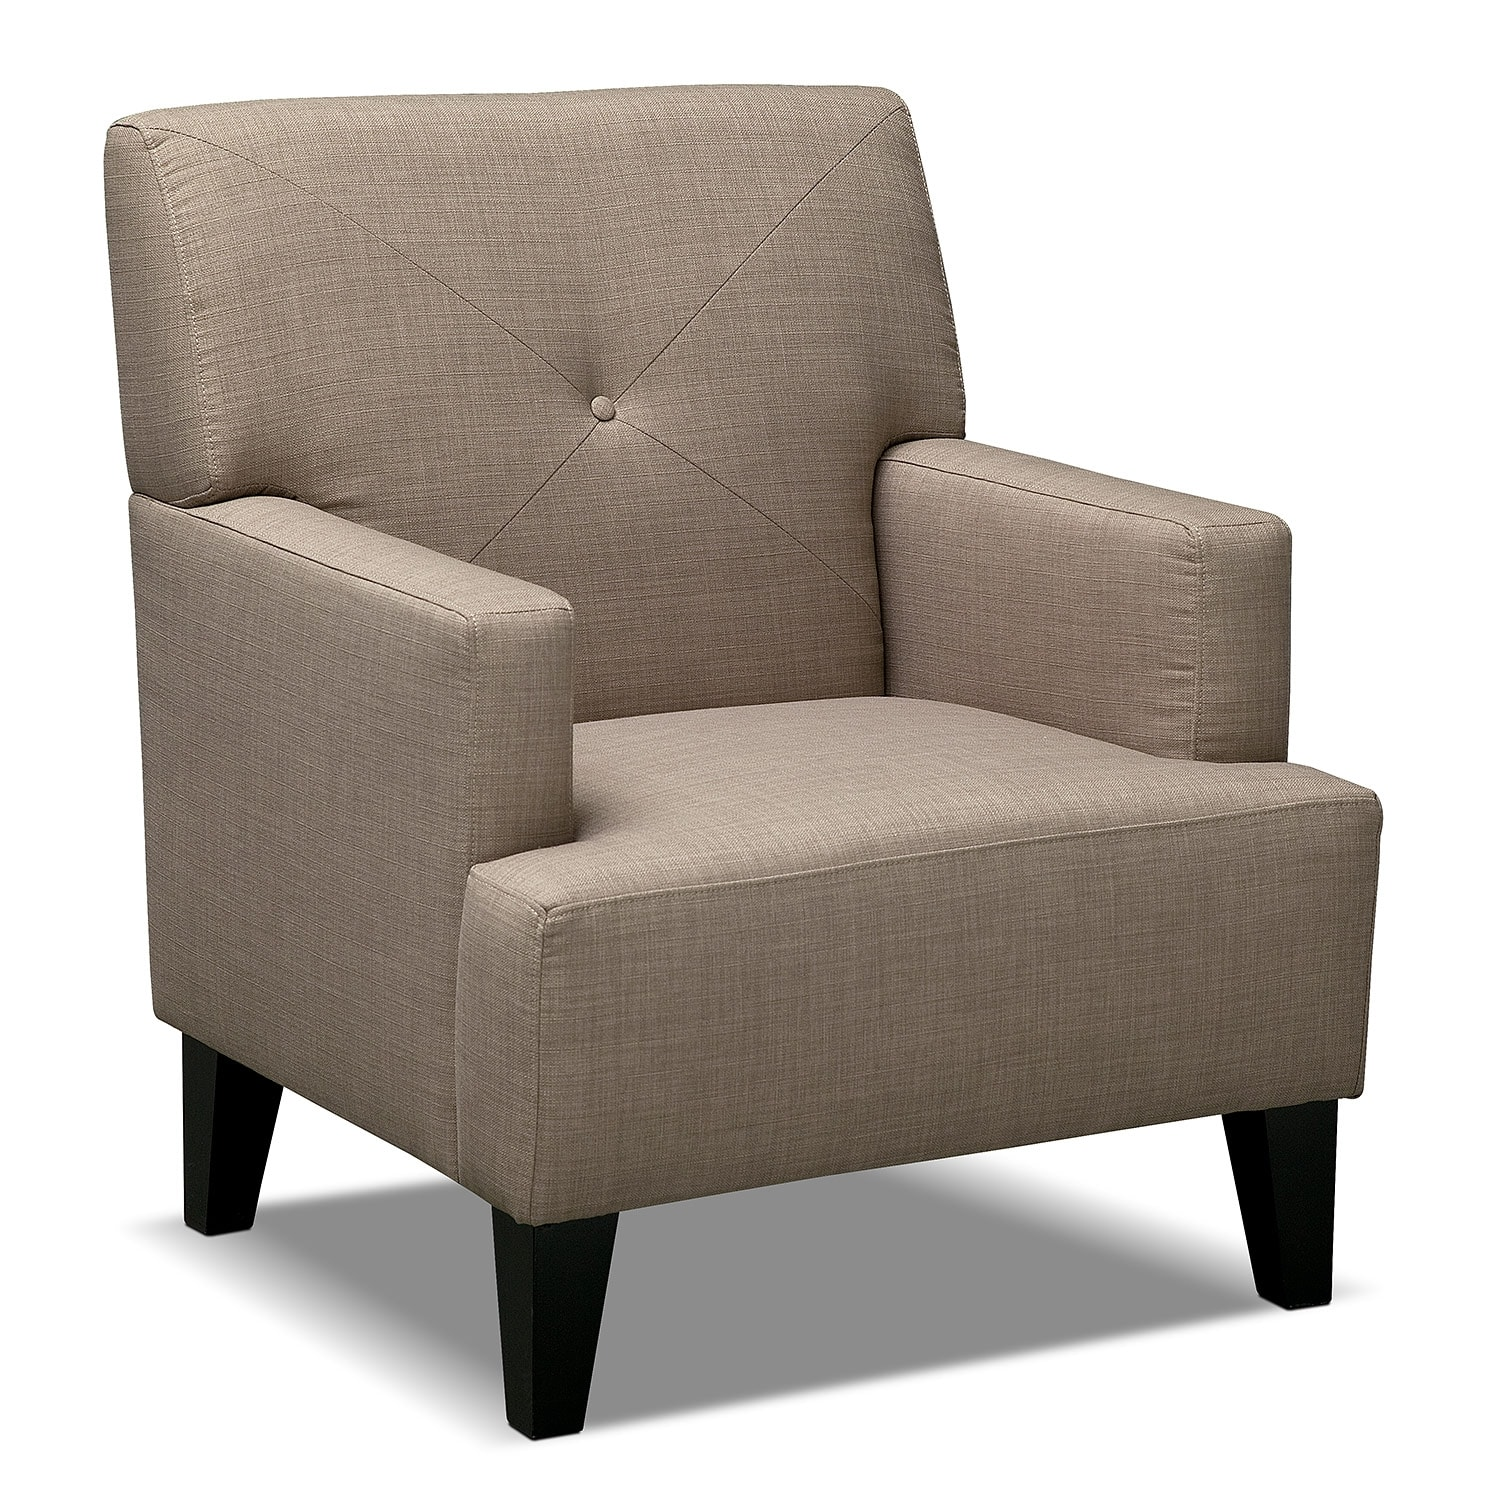 Accent chair avalon wheat value city furniture for Living room accent chairs